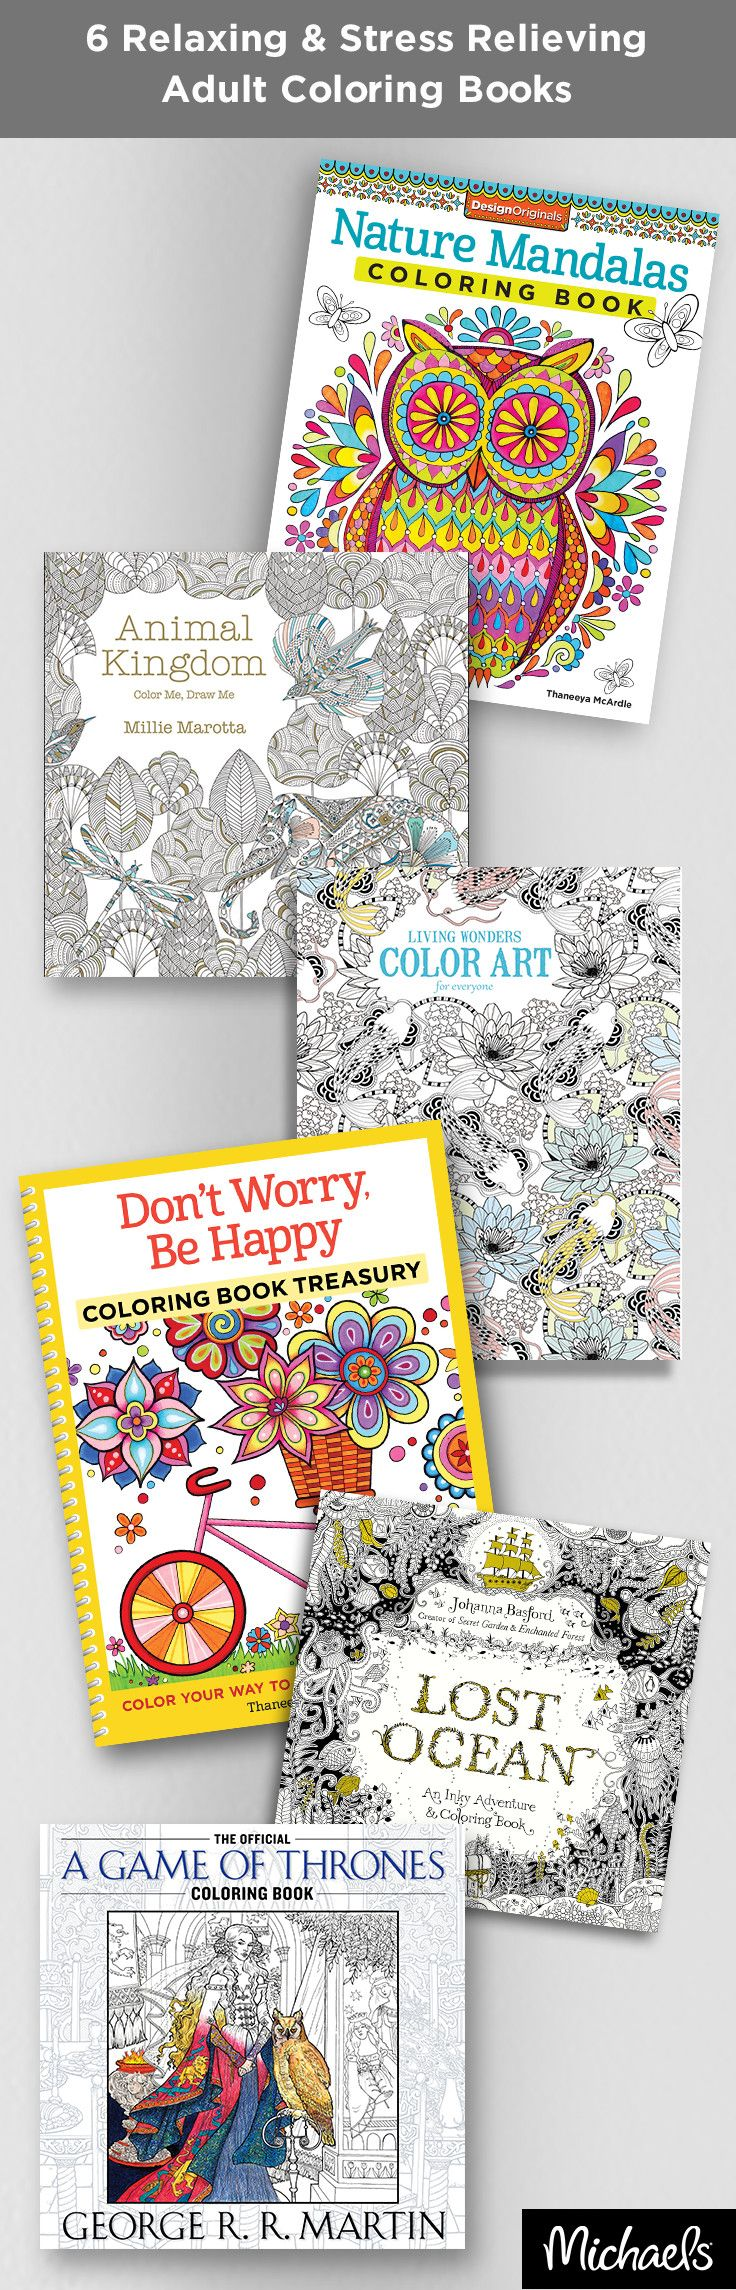 Coloring book michaels - Find This Pin And More On Coloring Books For Adults